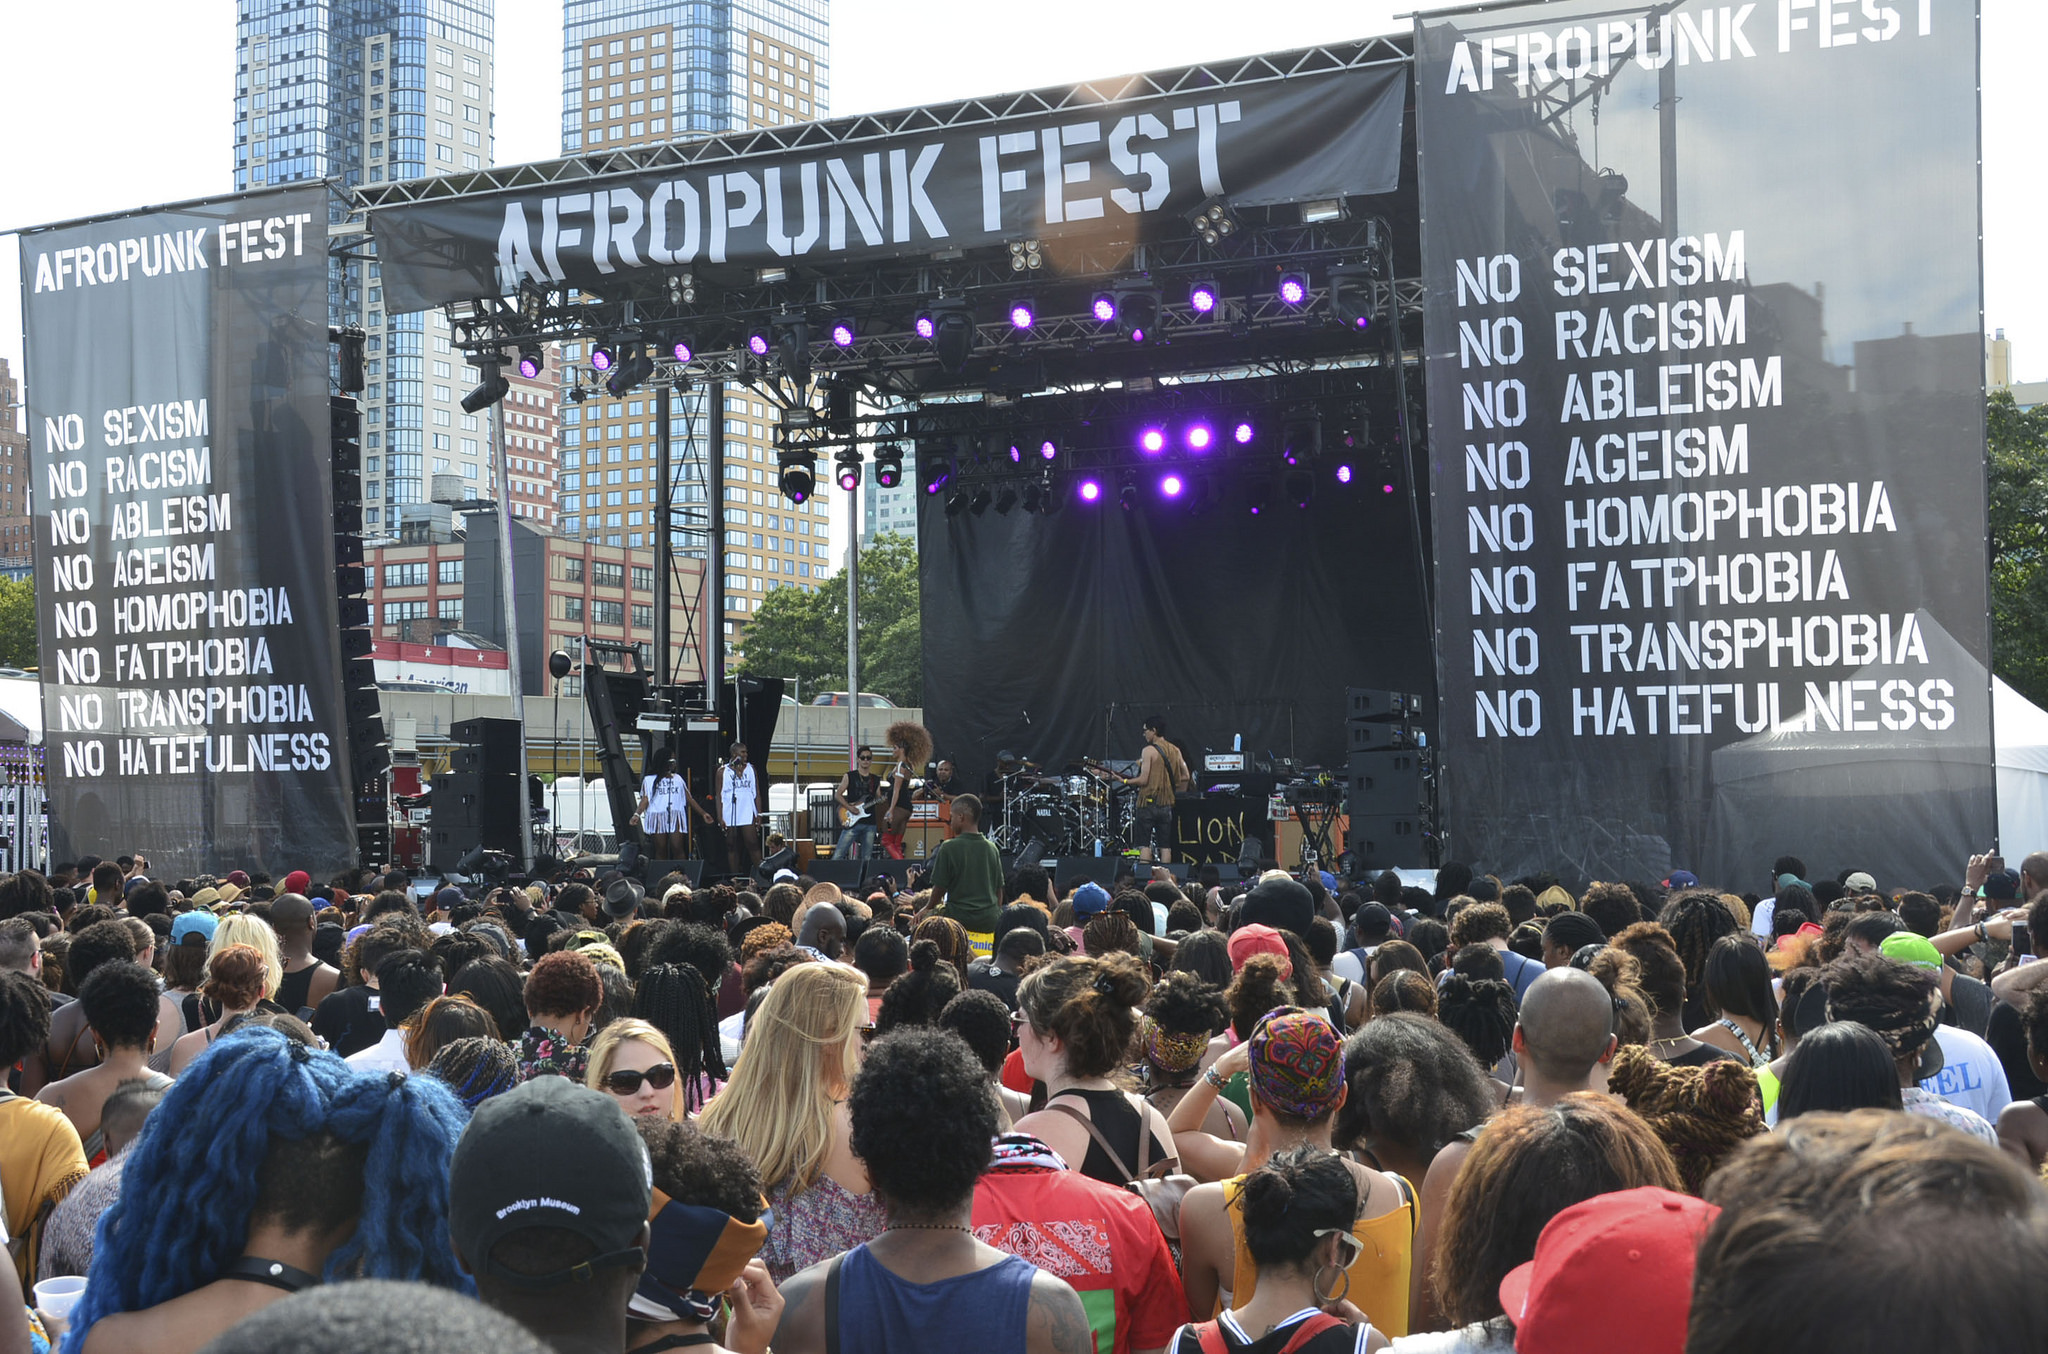 Reducing black prejudice through a music festival